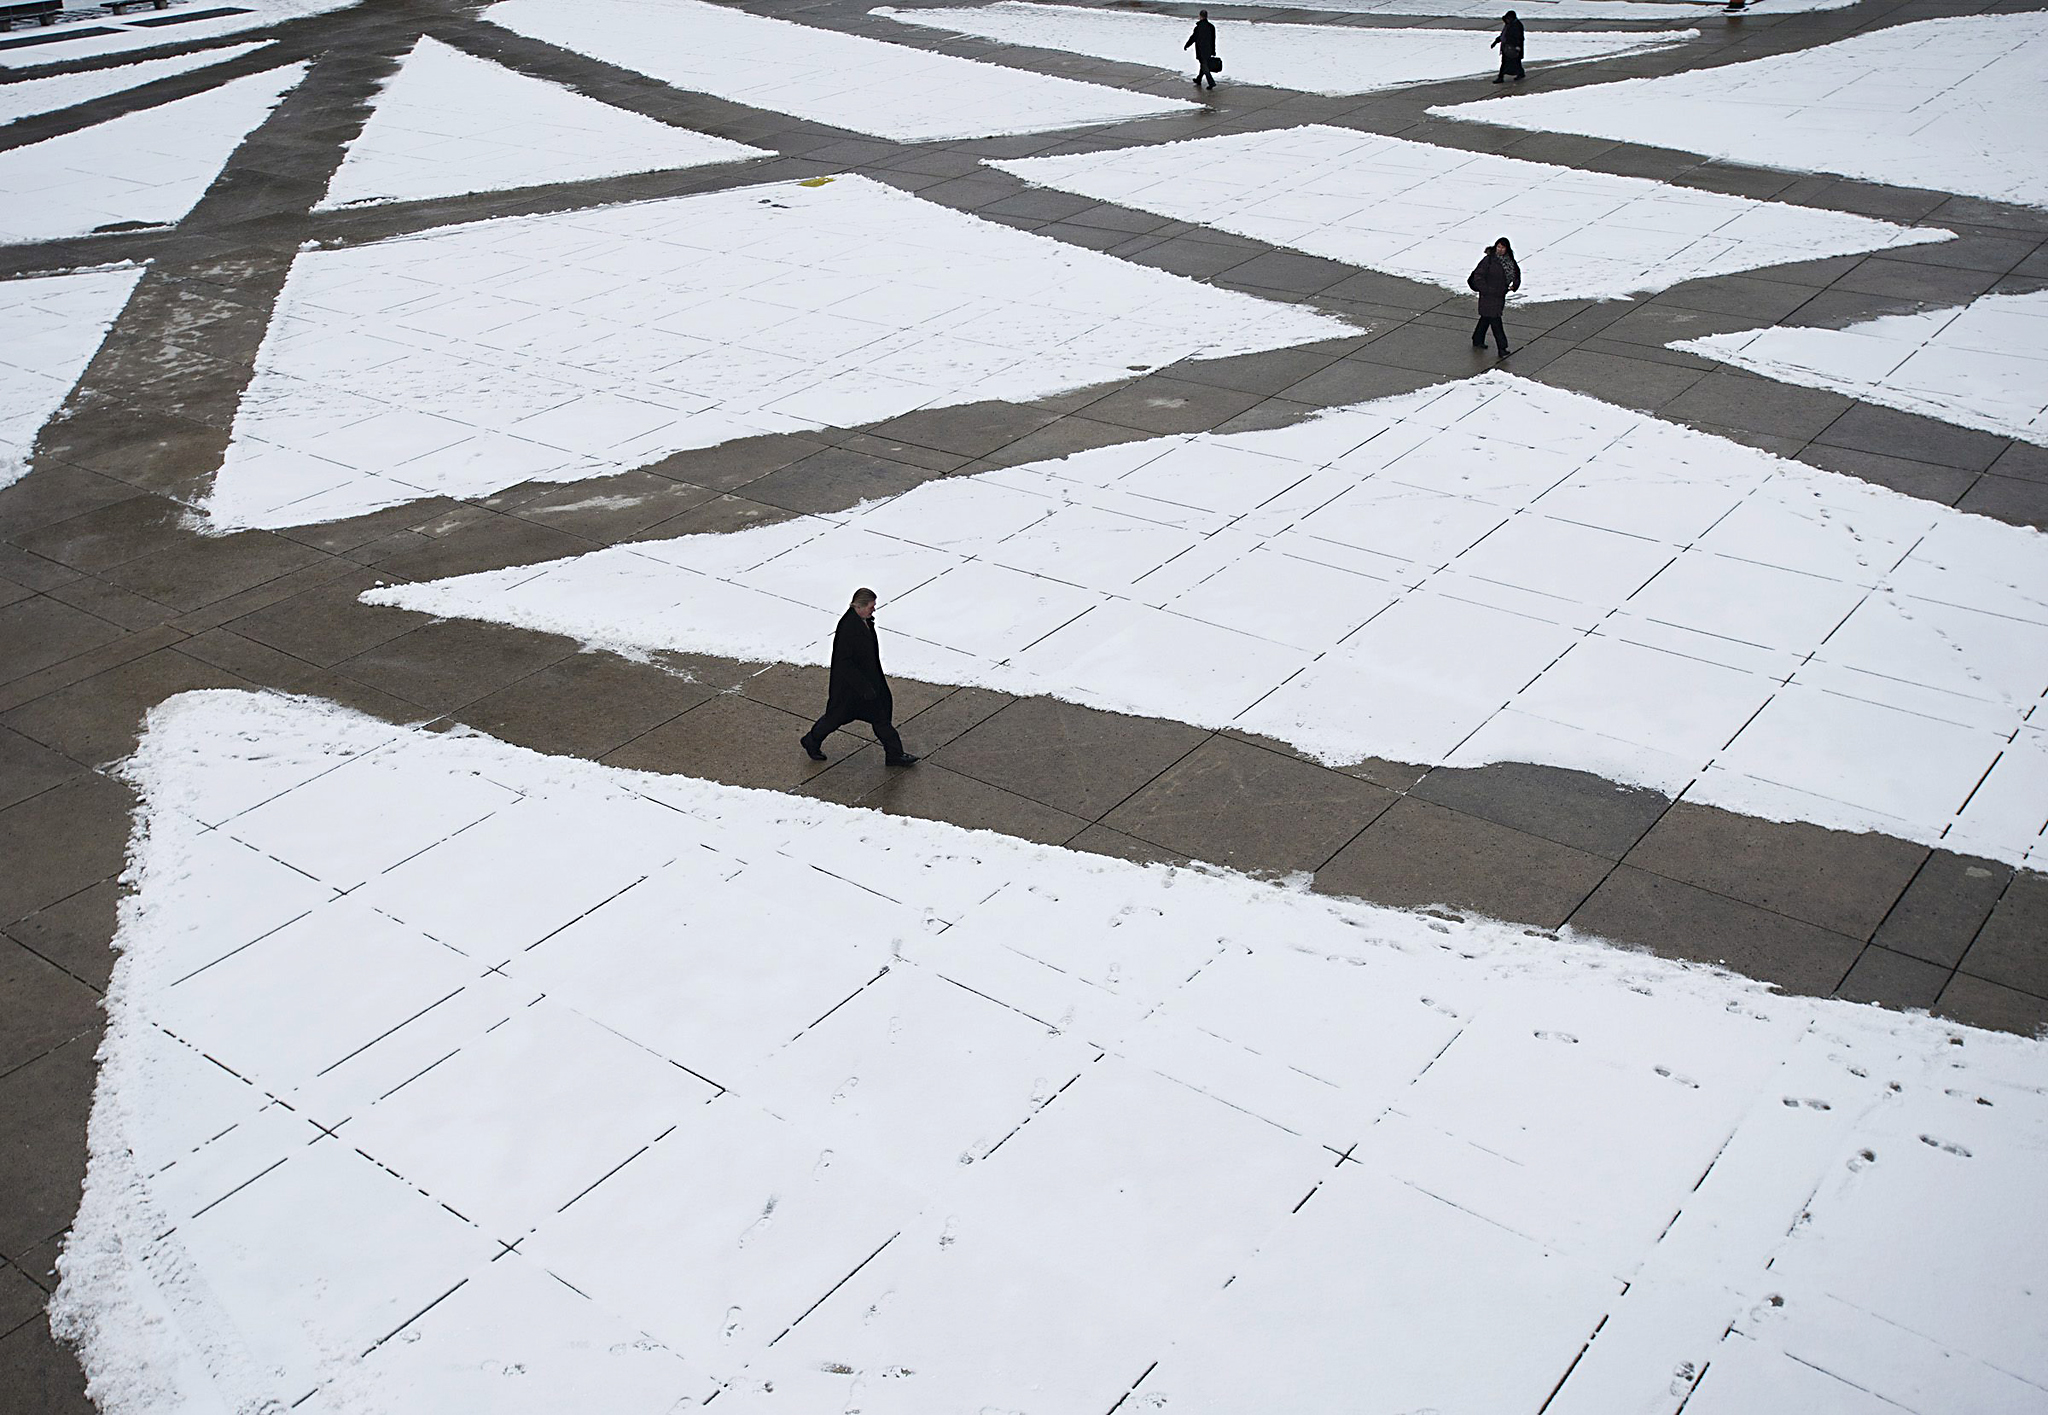 People make their way on plowed paths in the frigid temperatures outside city hall in Toronto on Monday, Jan. 20, 2014.